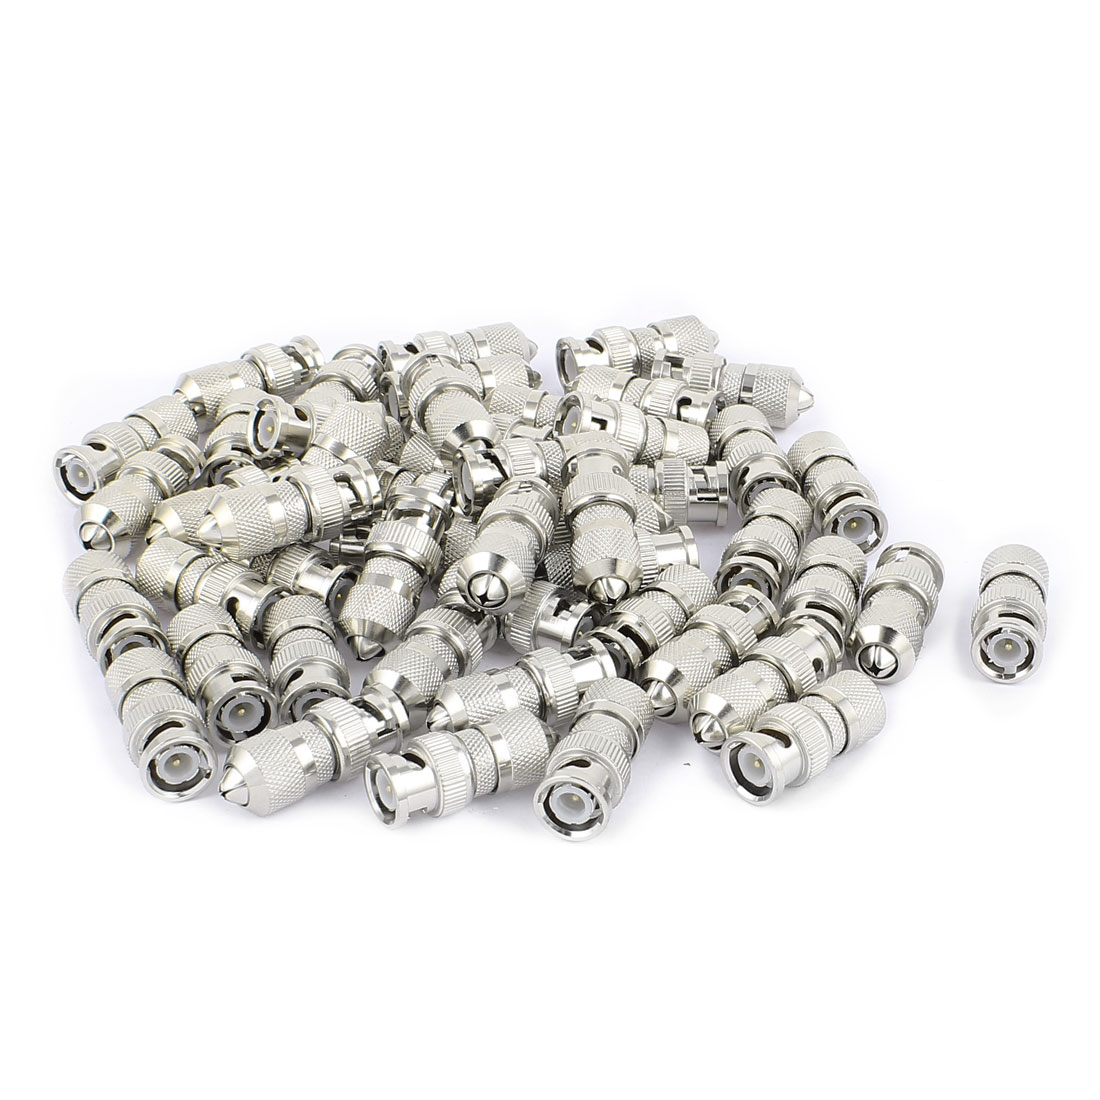 50 Pcs Silver Tone Metal BNC Male Connector Adapter for CCTV Camera